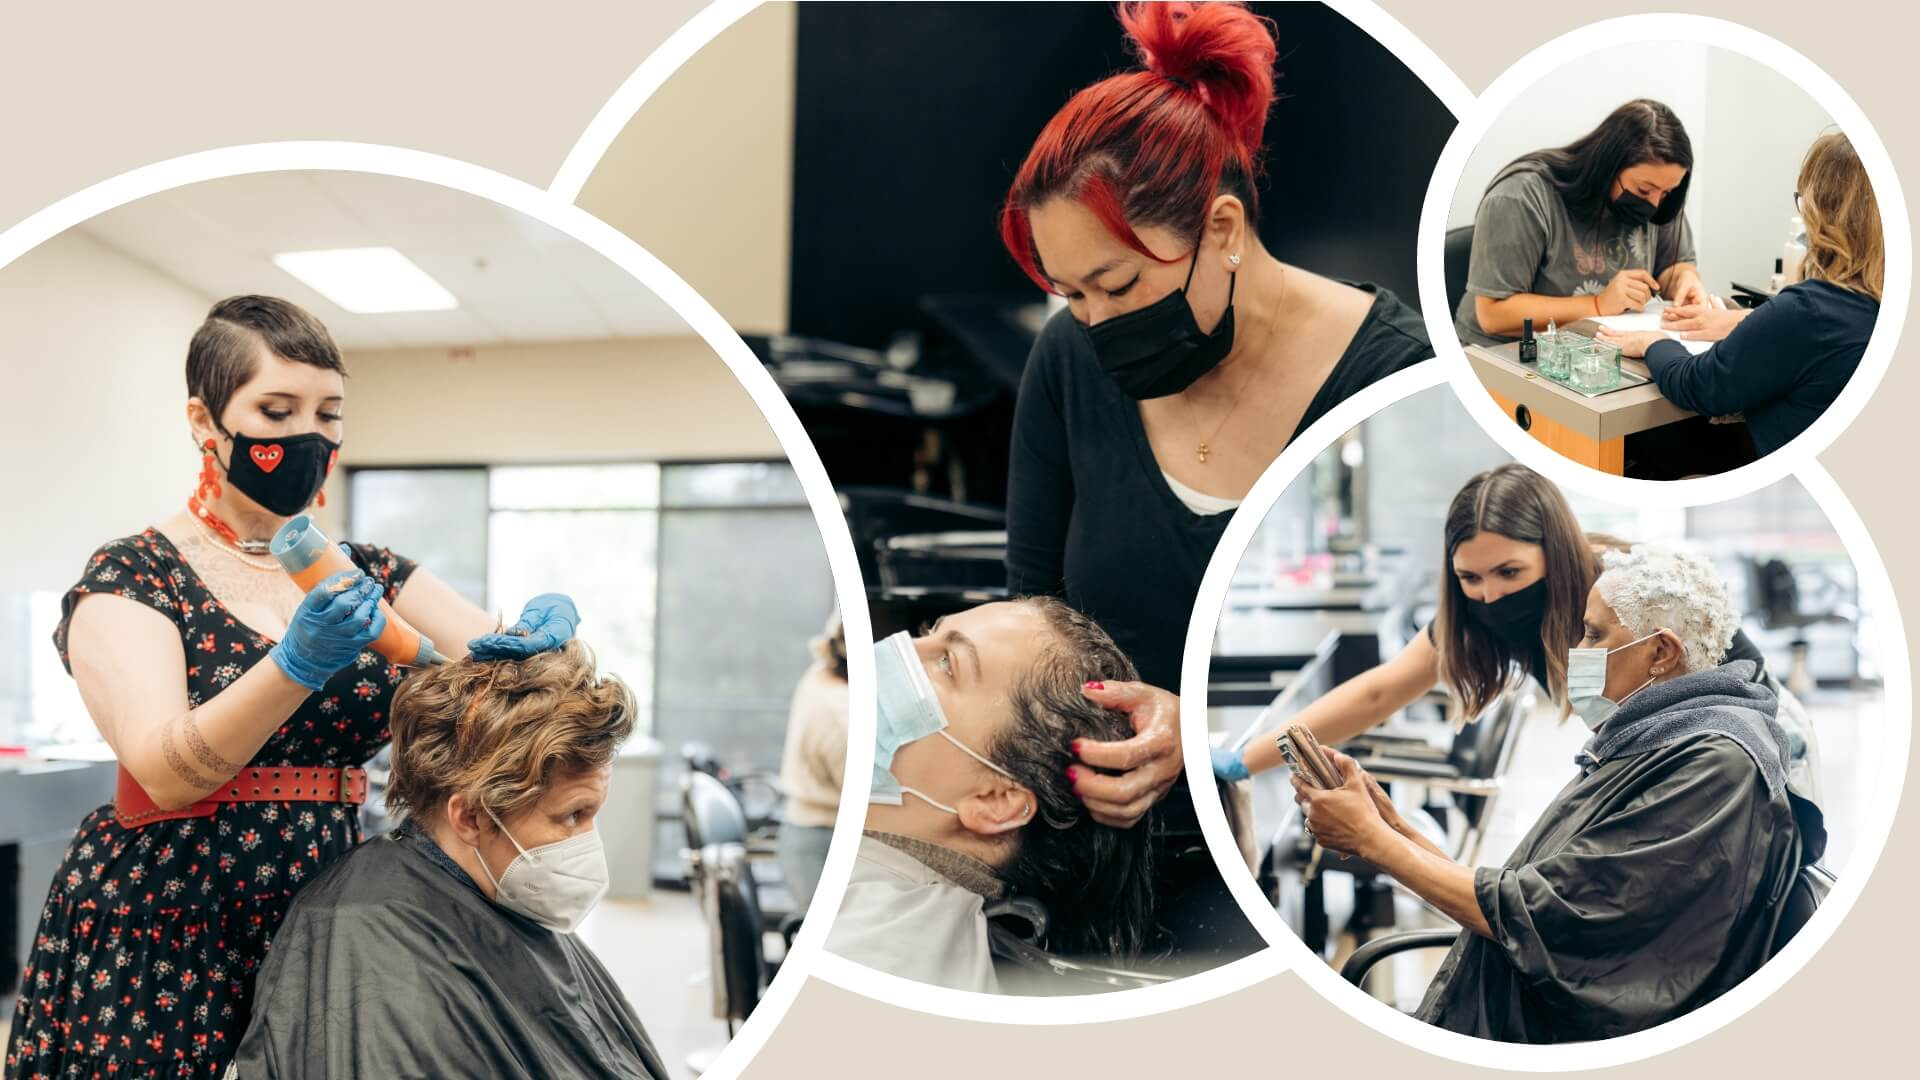 Experts from Gene Juarez salon working with their customers